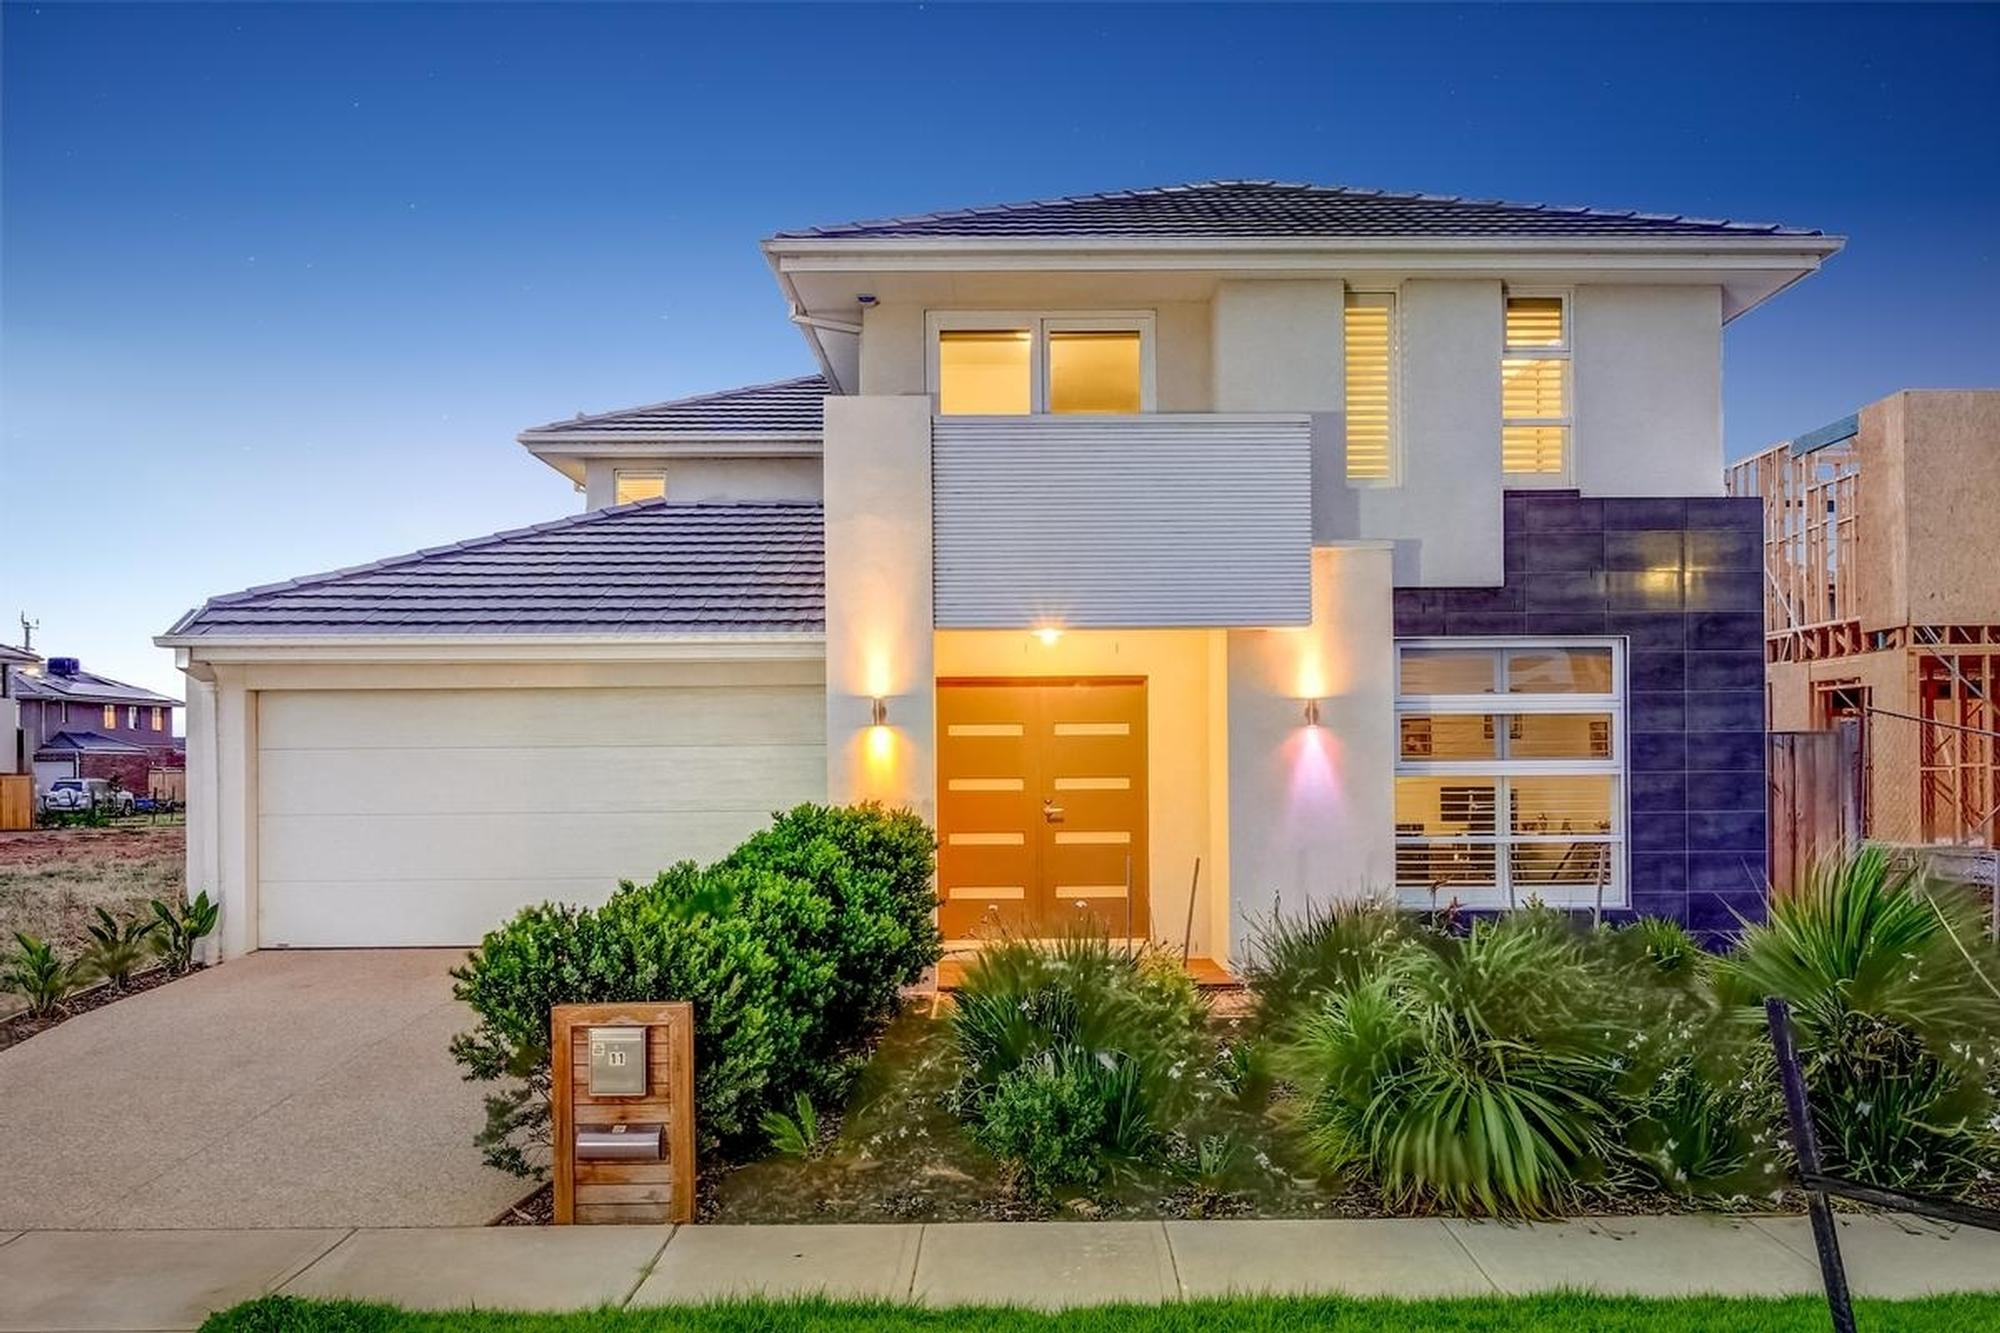 Home by the Harbour;11 Aquatic Drive, Werribee South